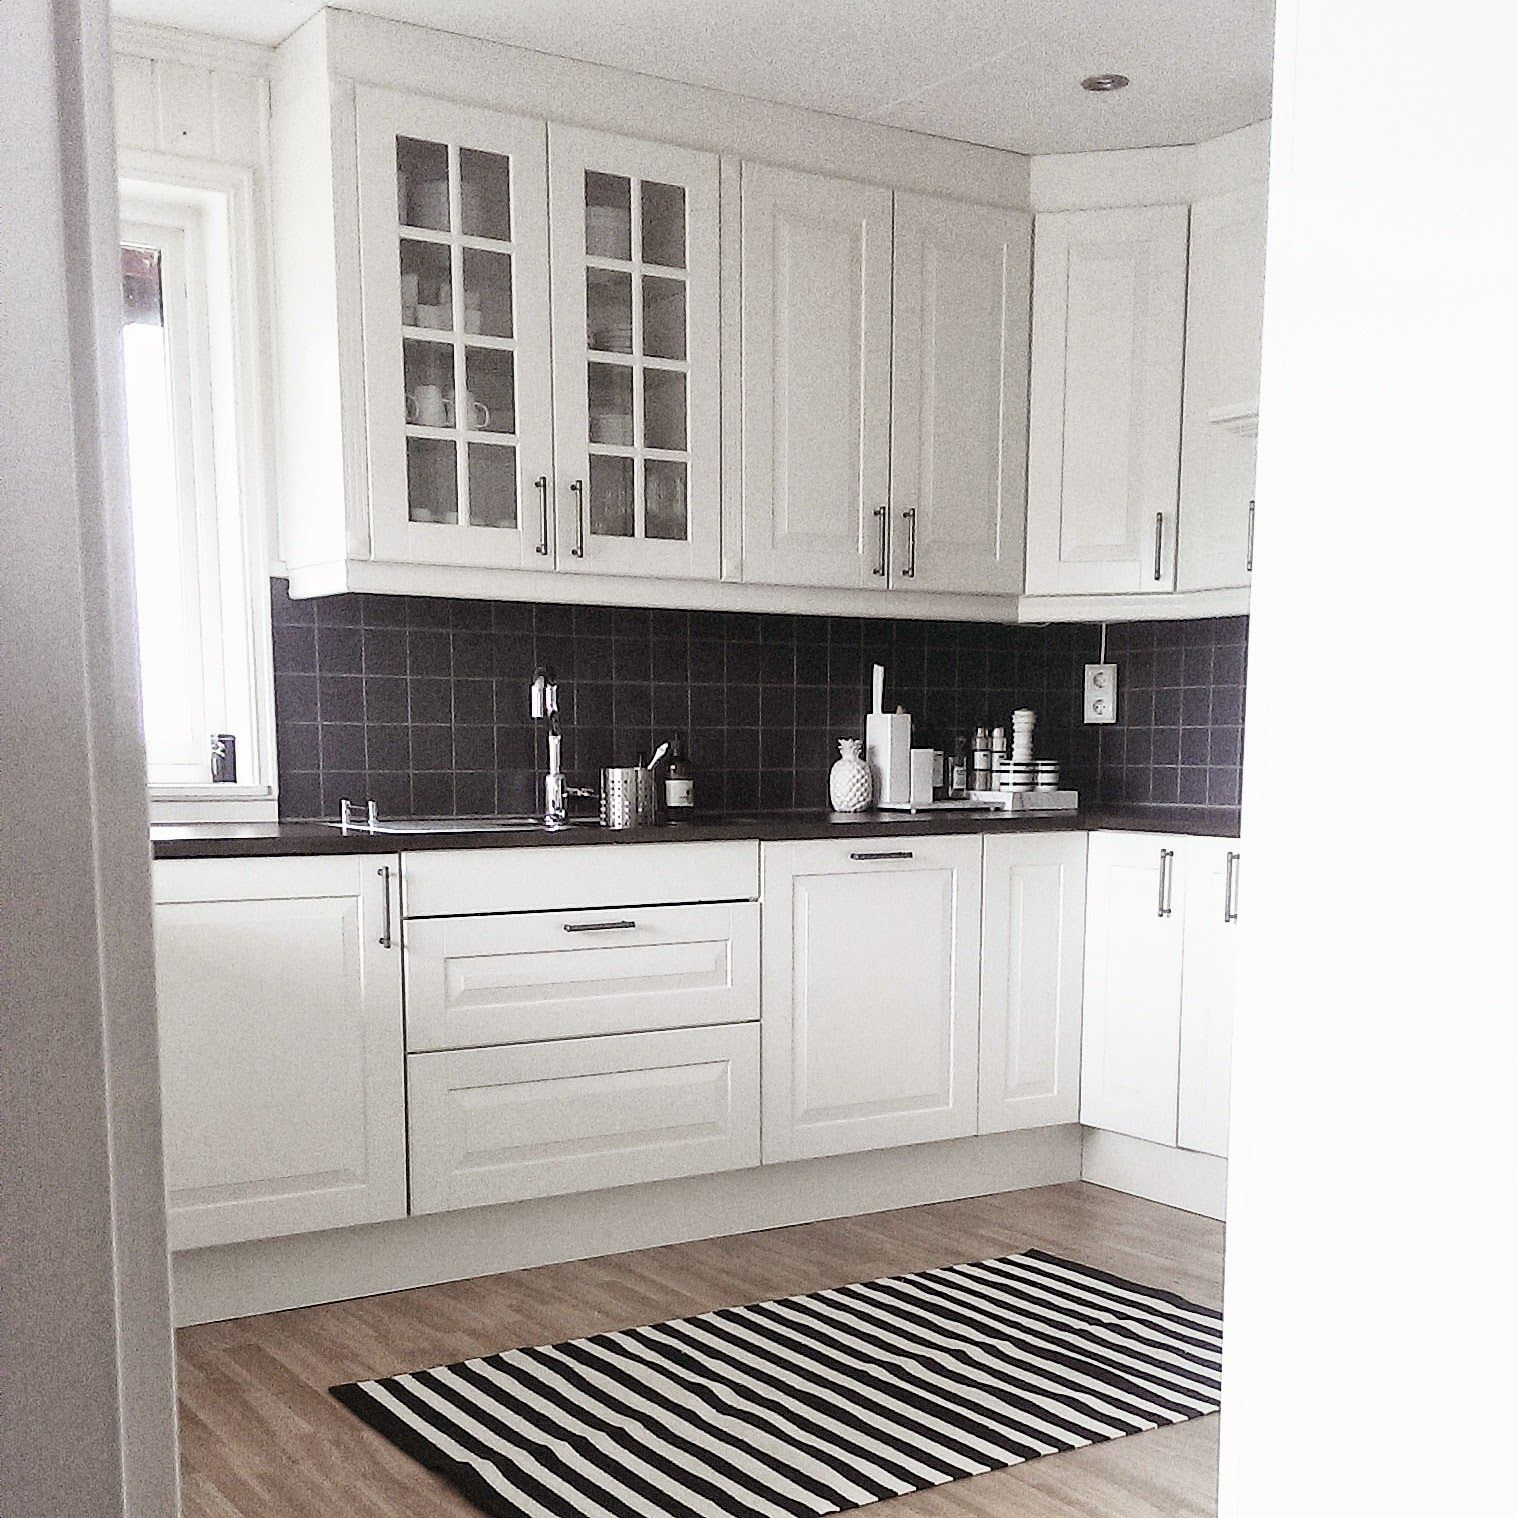 Love the black and white stripy rug | Anne's Home Secret IKEA kitchen